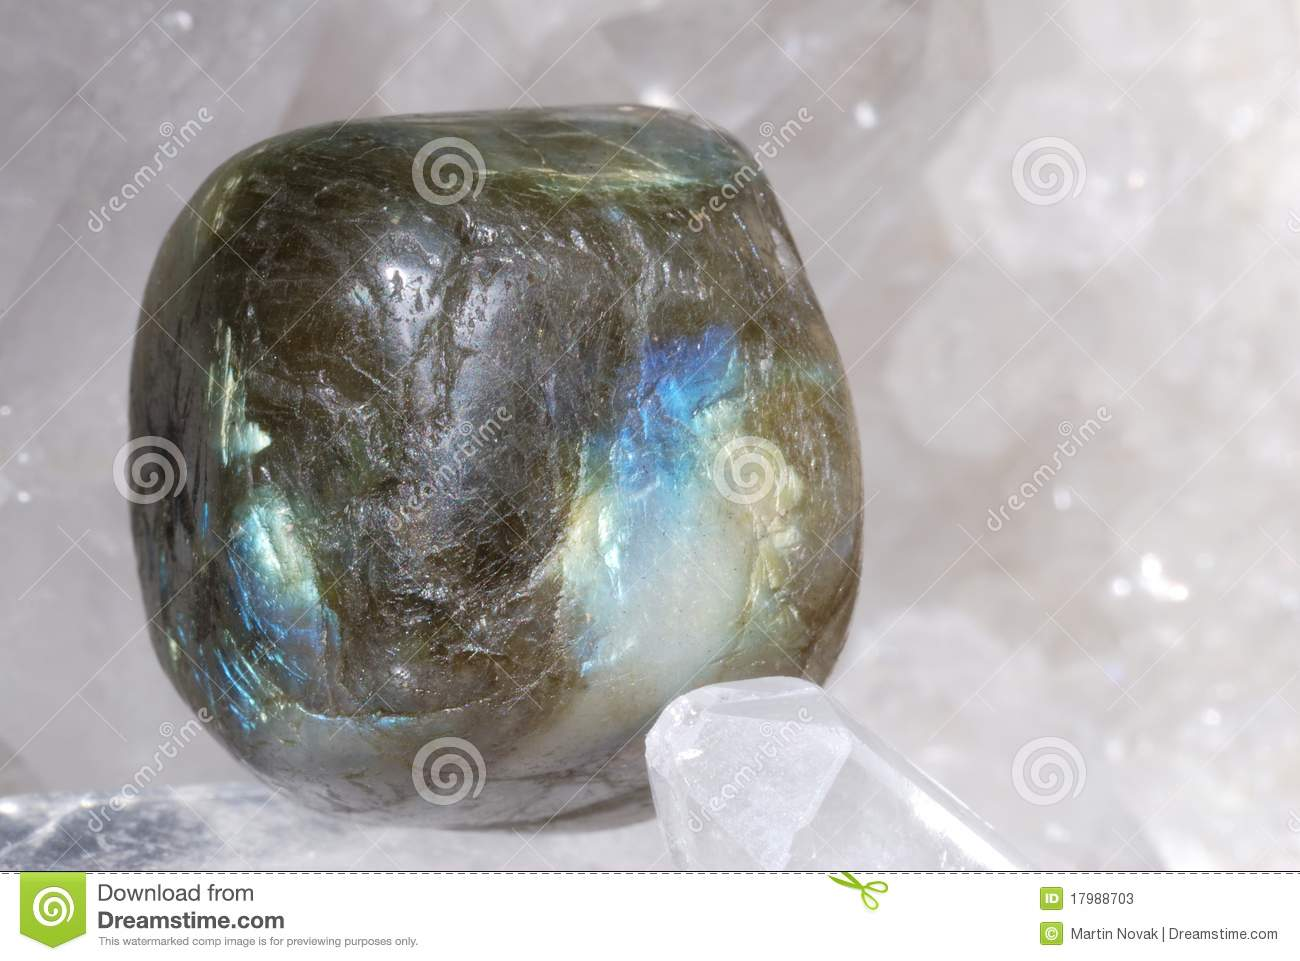 Labradorite laid on druze of quartz